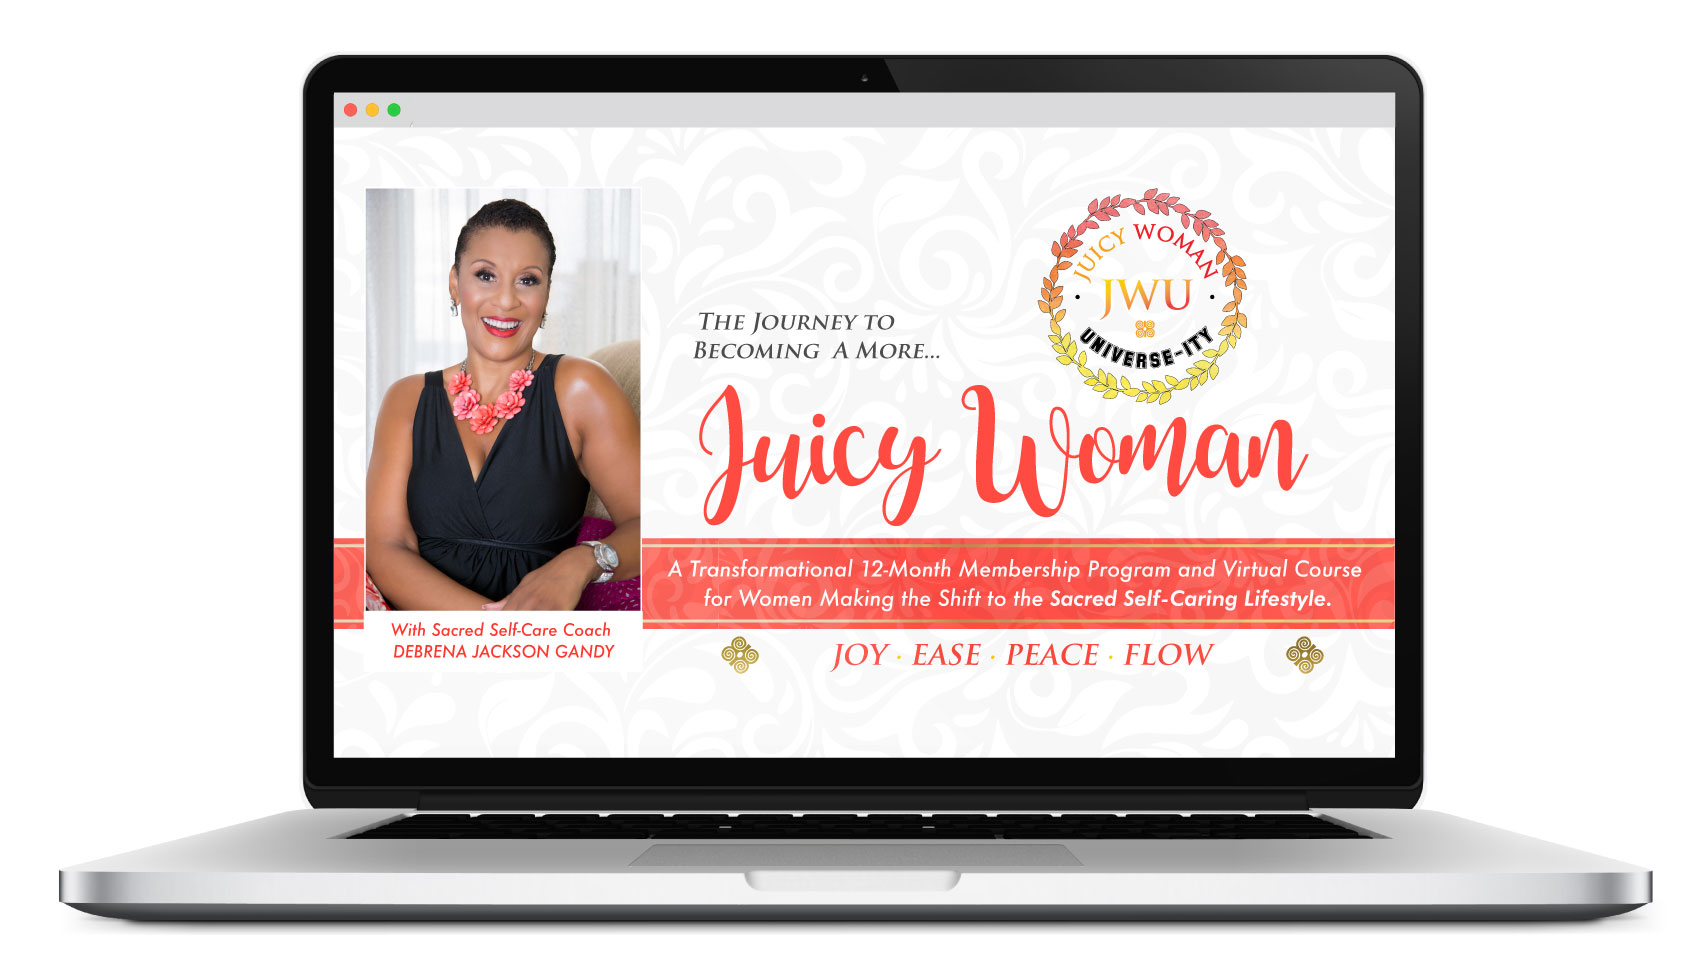 Juicy Woman University